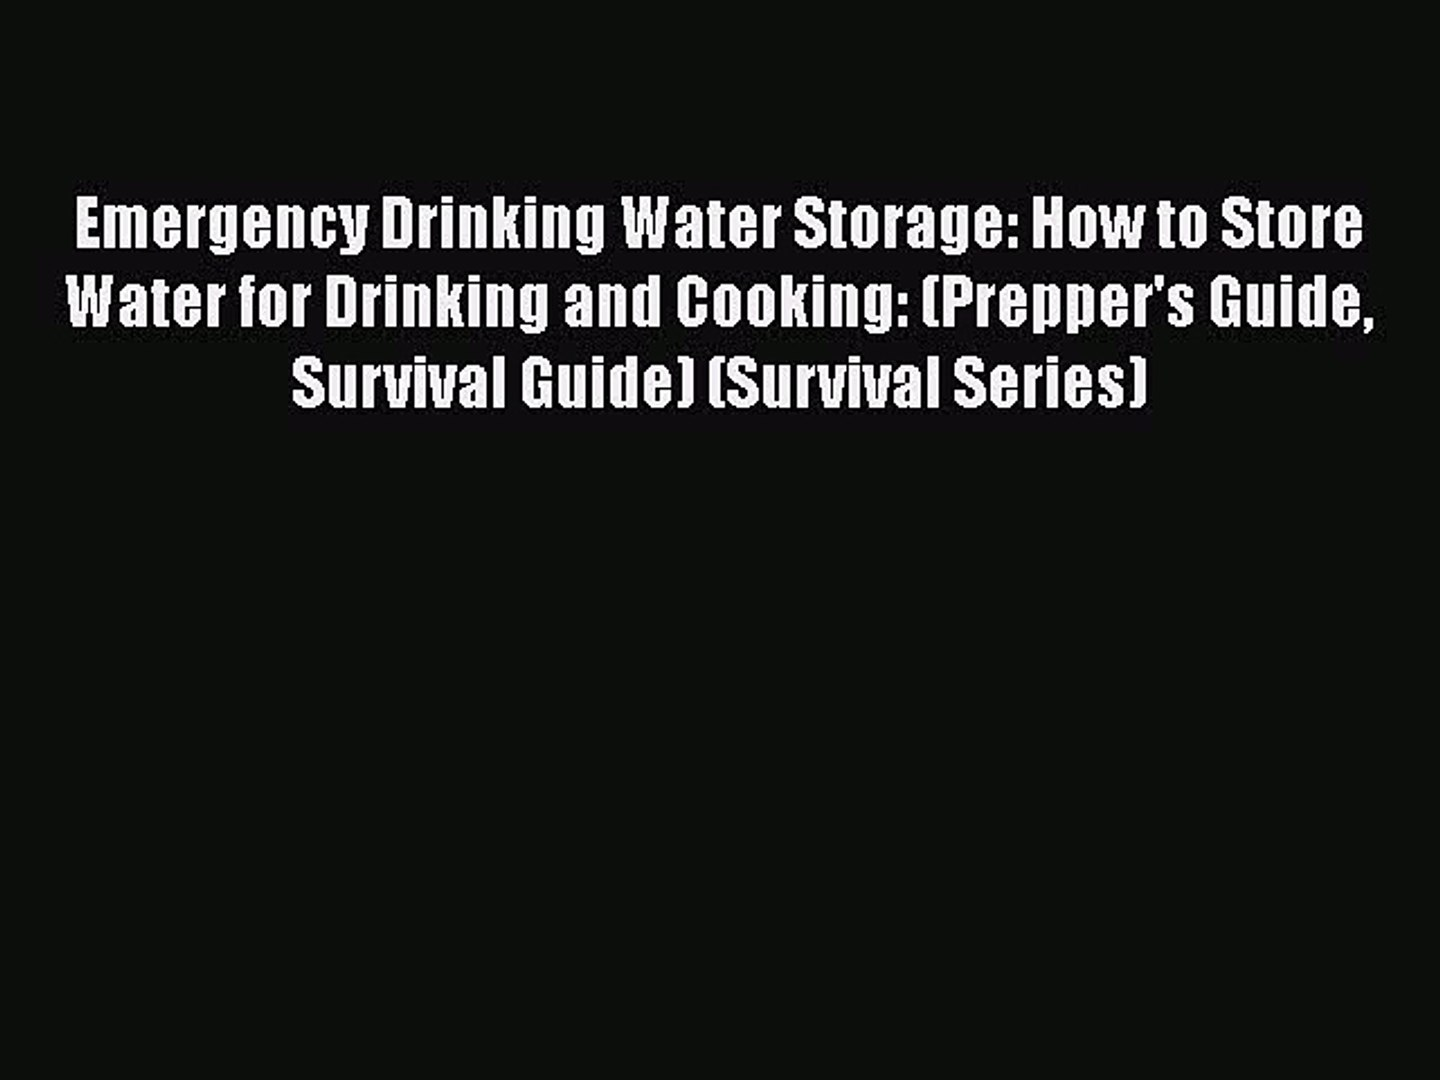 Read Emergency Drinking Water Storage: How to Store Water for Drinking and Cooking: (Prepper's